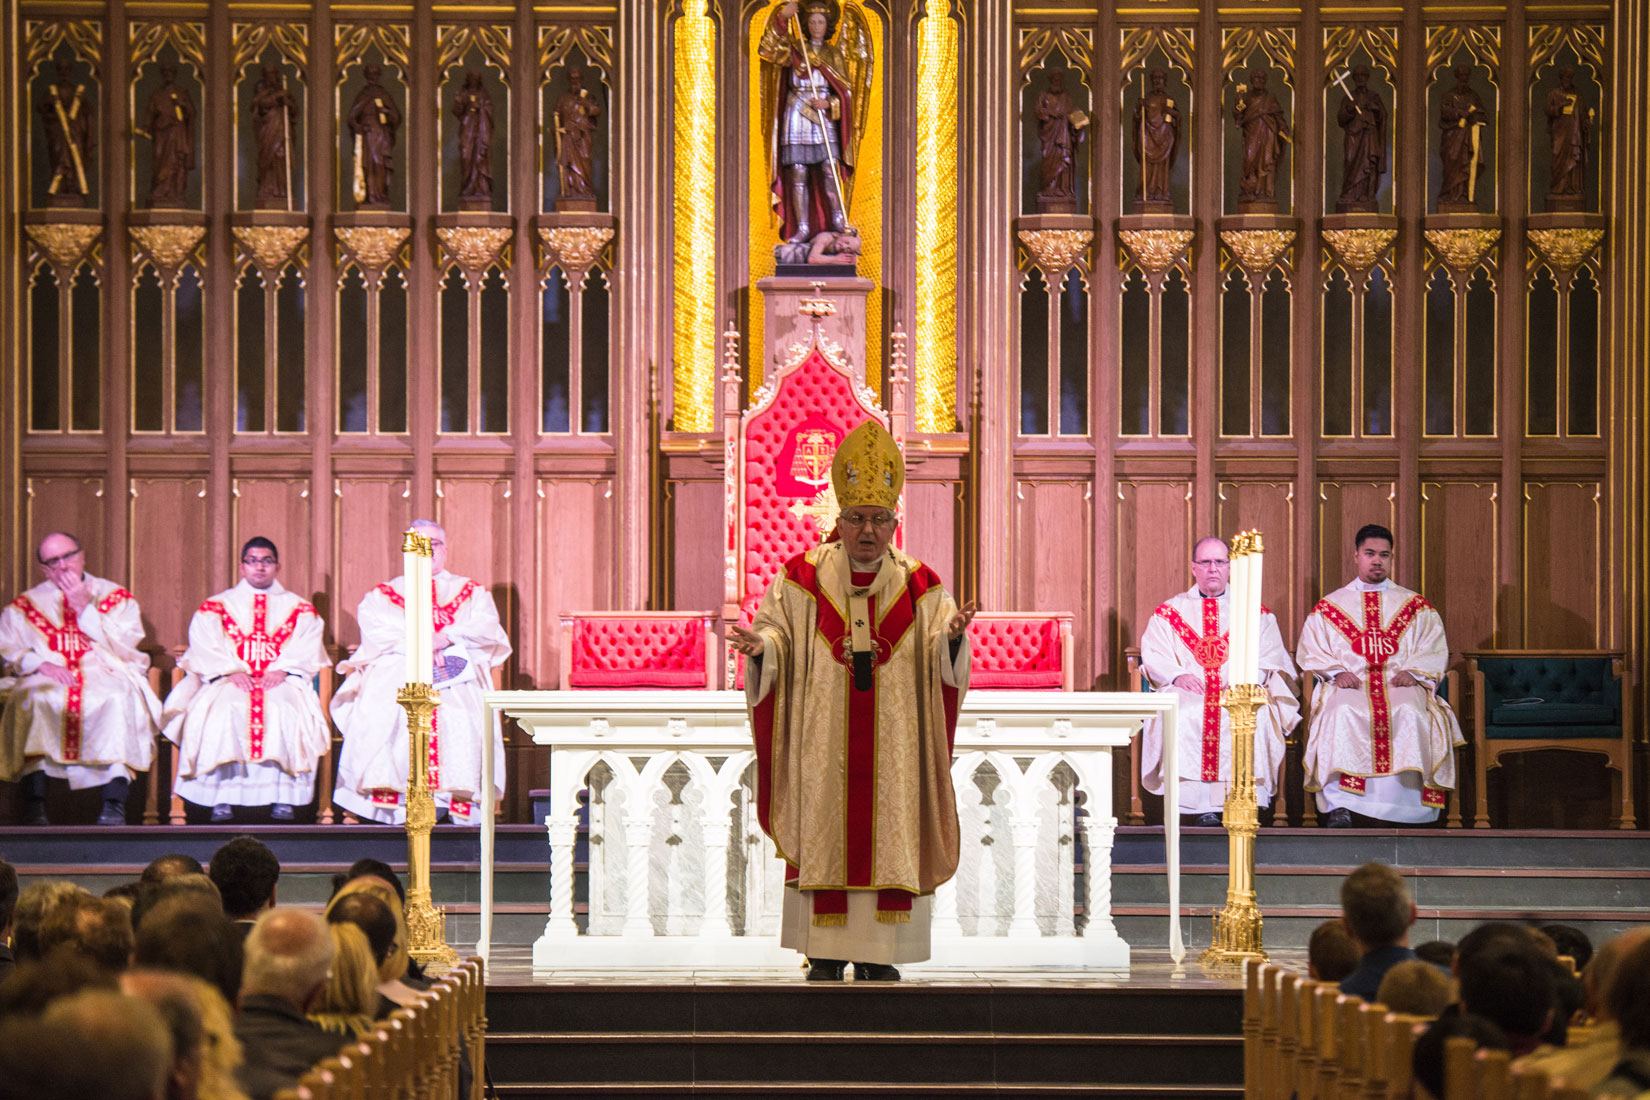 Cardinal Thomas Collins preaching at the workers' thanksgiving Mass at St. Michael's Cathedral, Sept. 30. (Photo by Michael Swan)